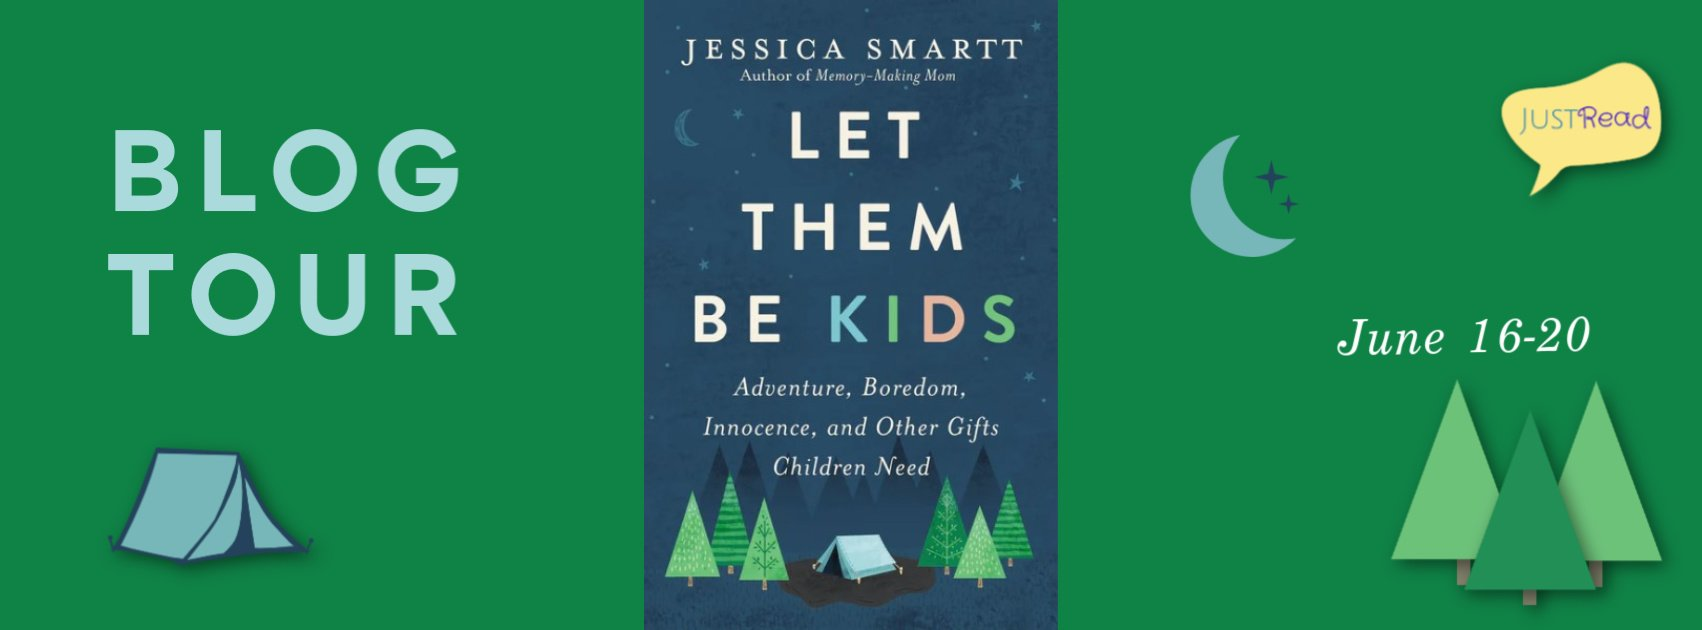 Let Them Be Kids Blog Tour